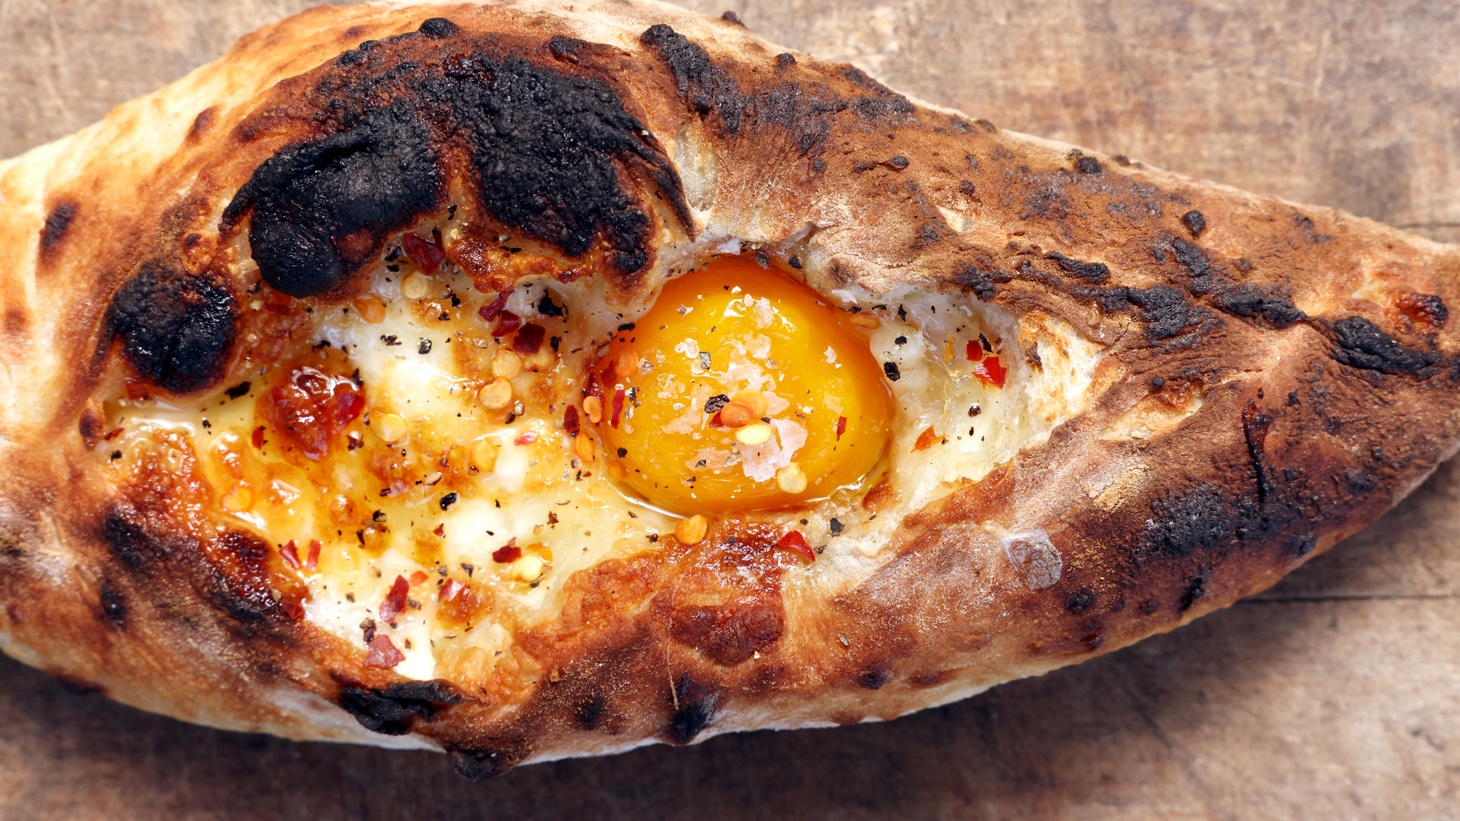 Bill Addison recommends the khachapuri from Emily Efraimov of Little Dacha.